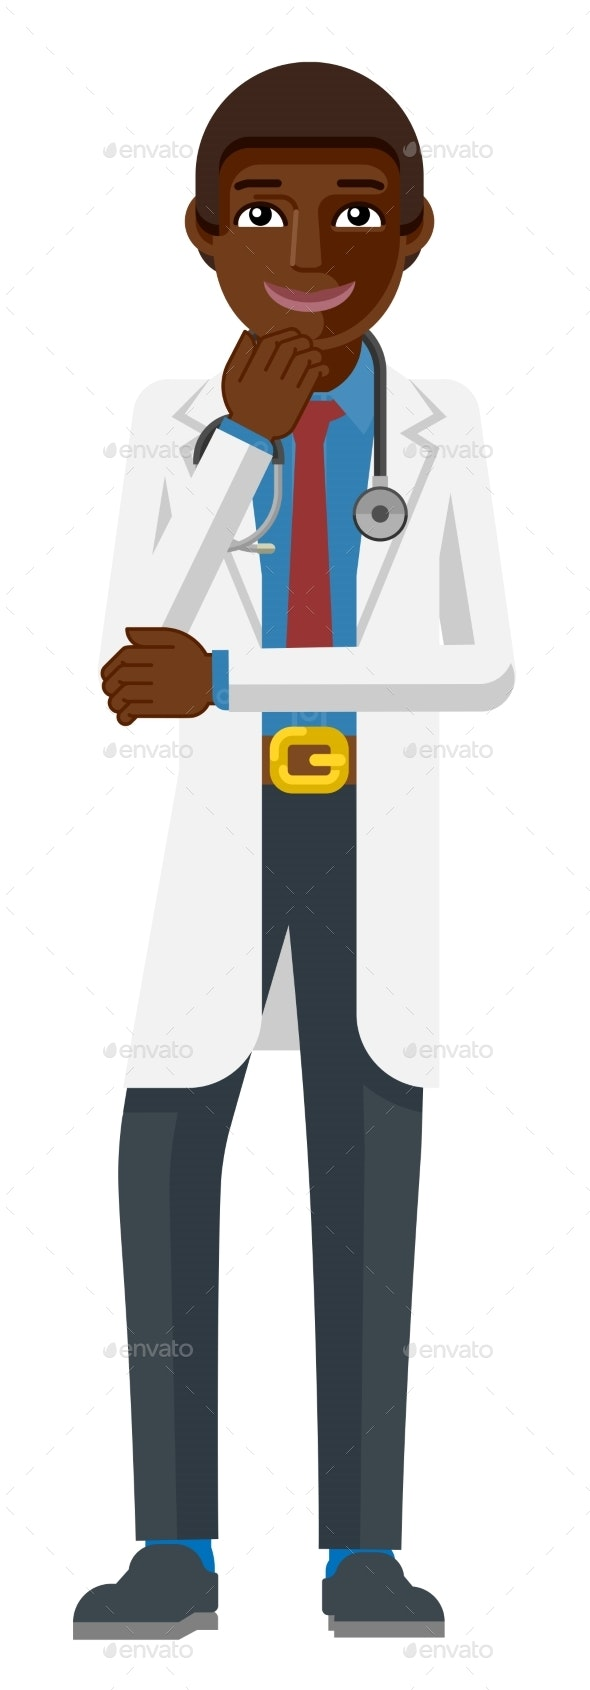 Young Medical Doctor Cartoon Mascot - People Characters